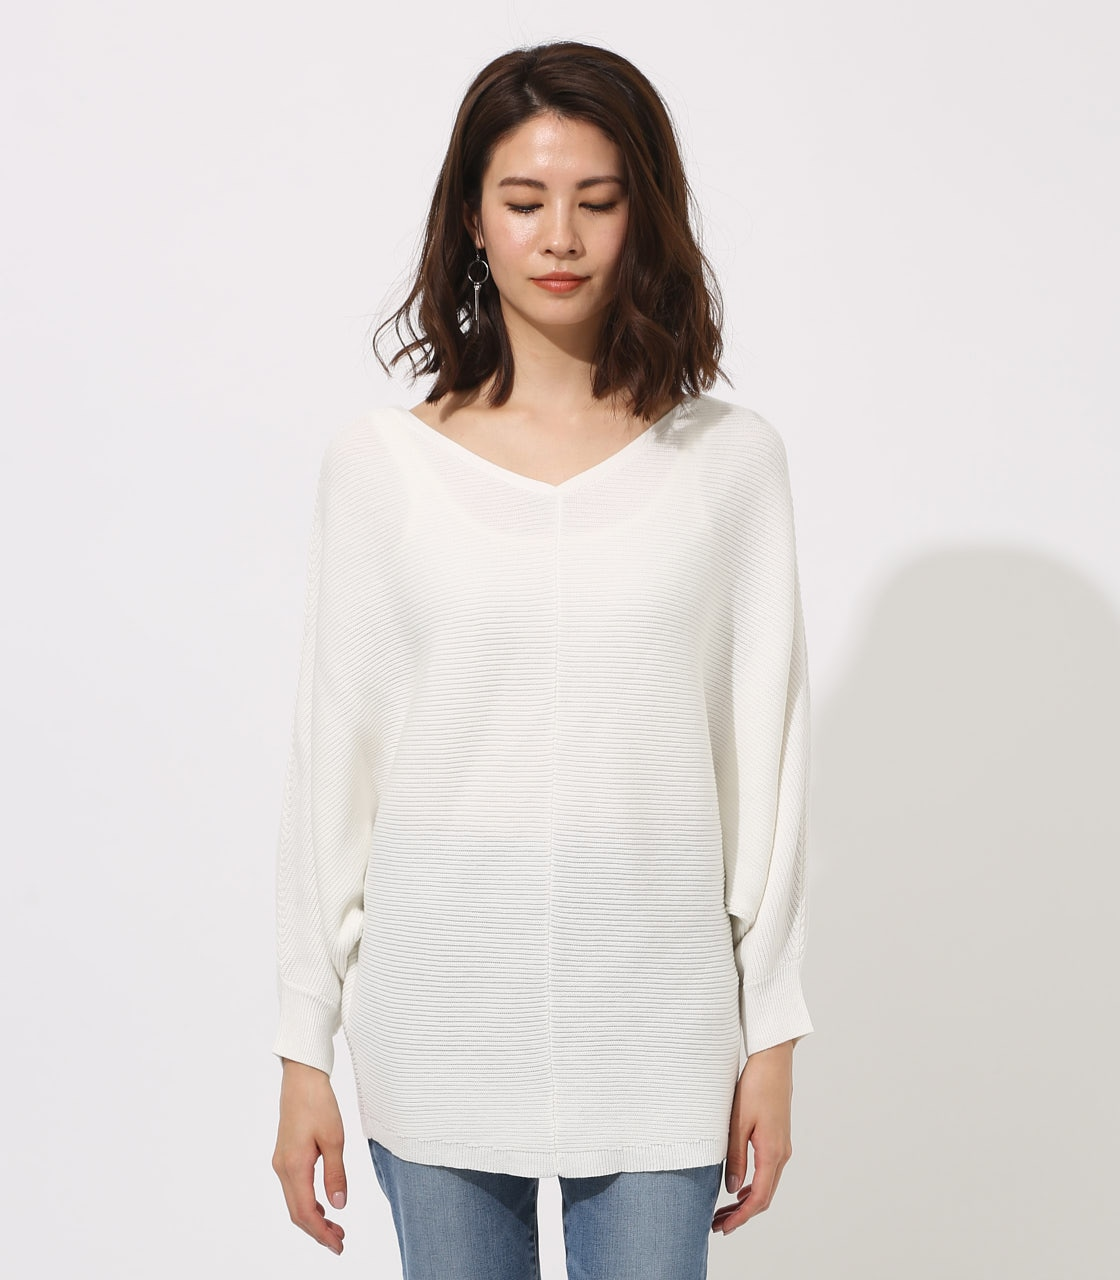 【AZUL BY MOUSSY】2WAY DOLMAN KNIT TOPS 詳細画像 O/WHT 5